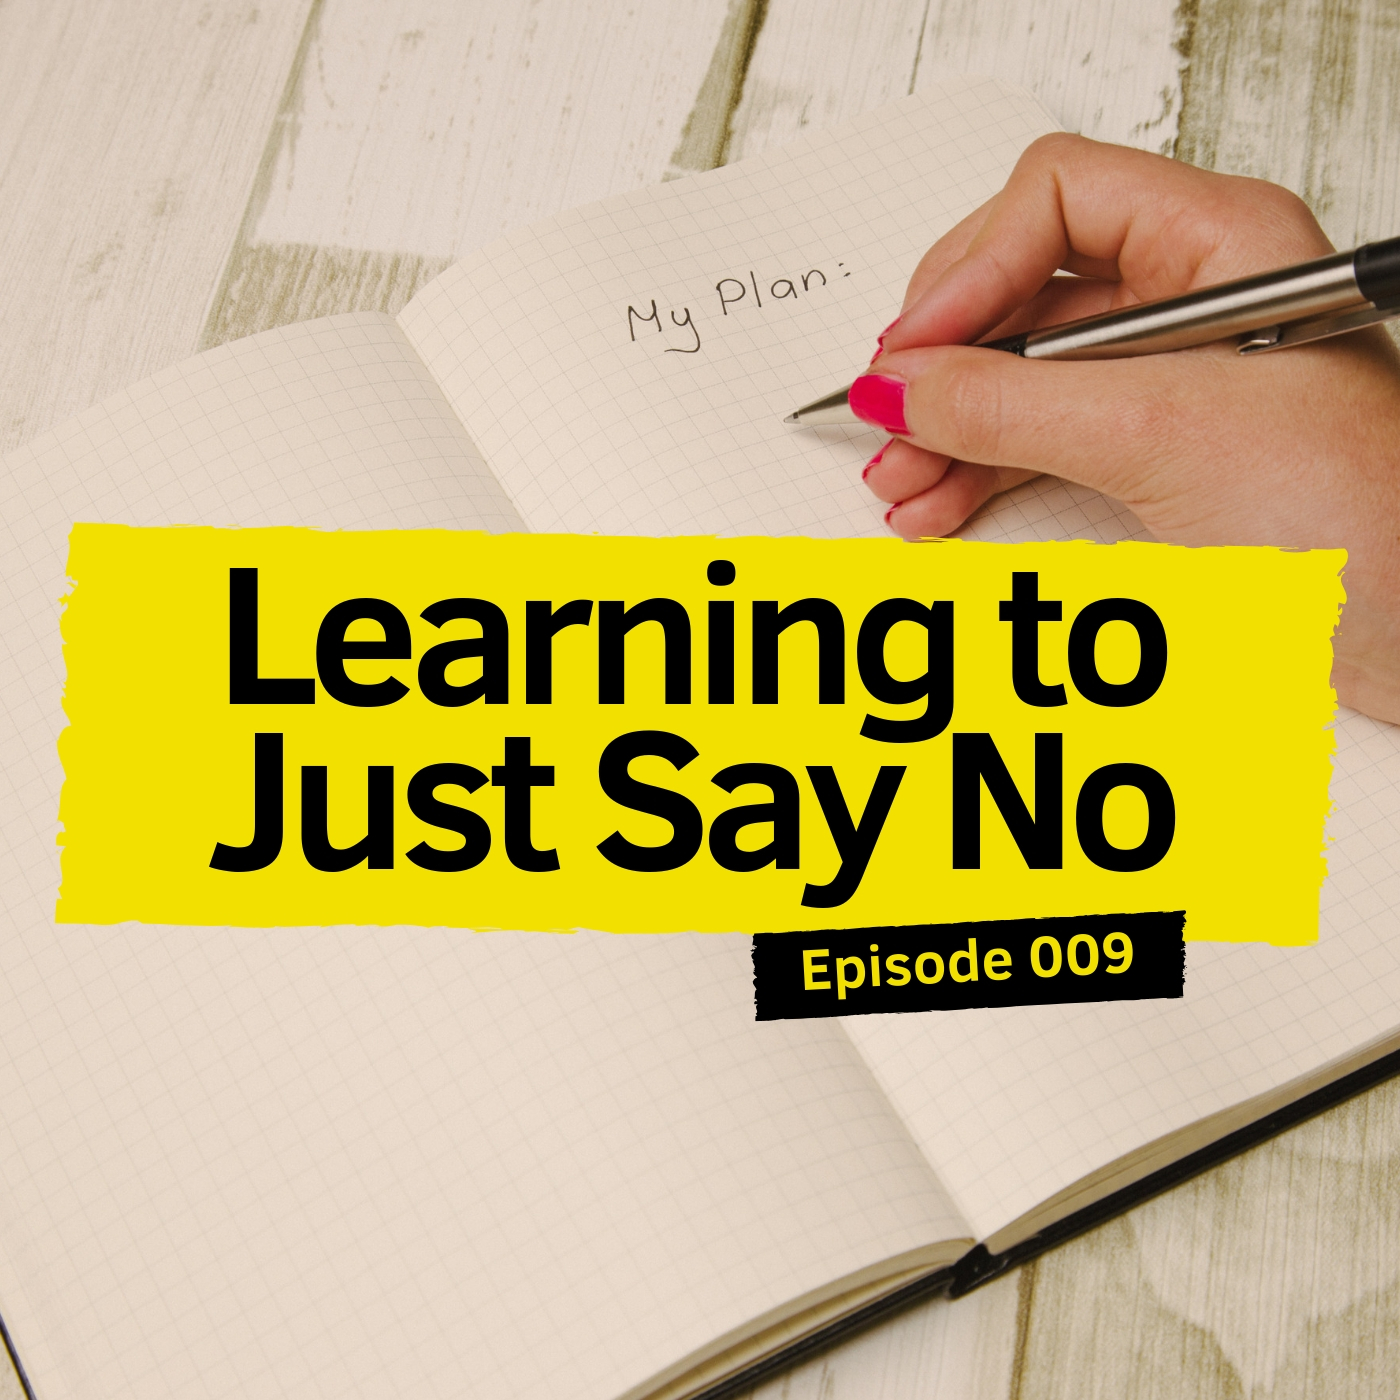 Episode 009 Learning to Just Say No.jpg